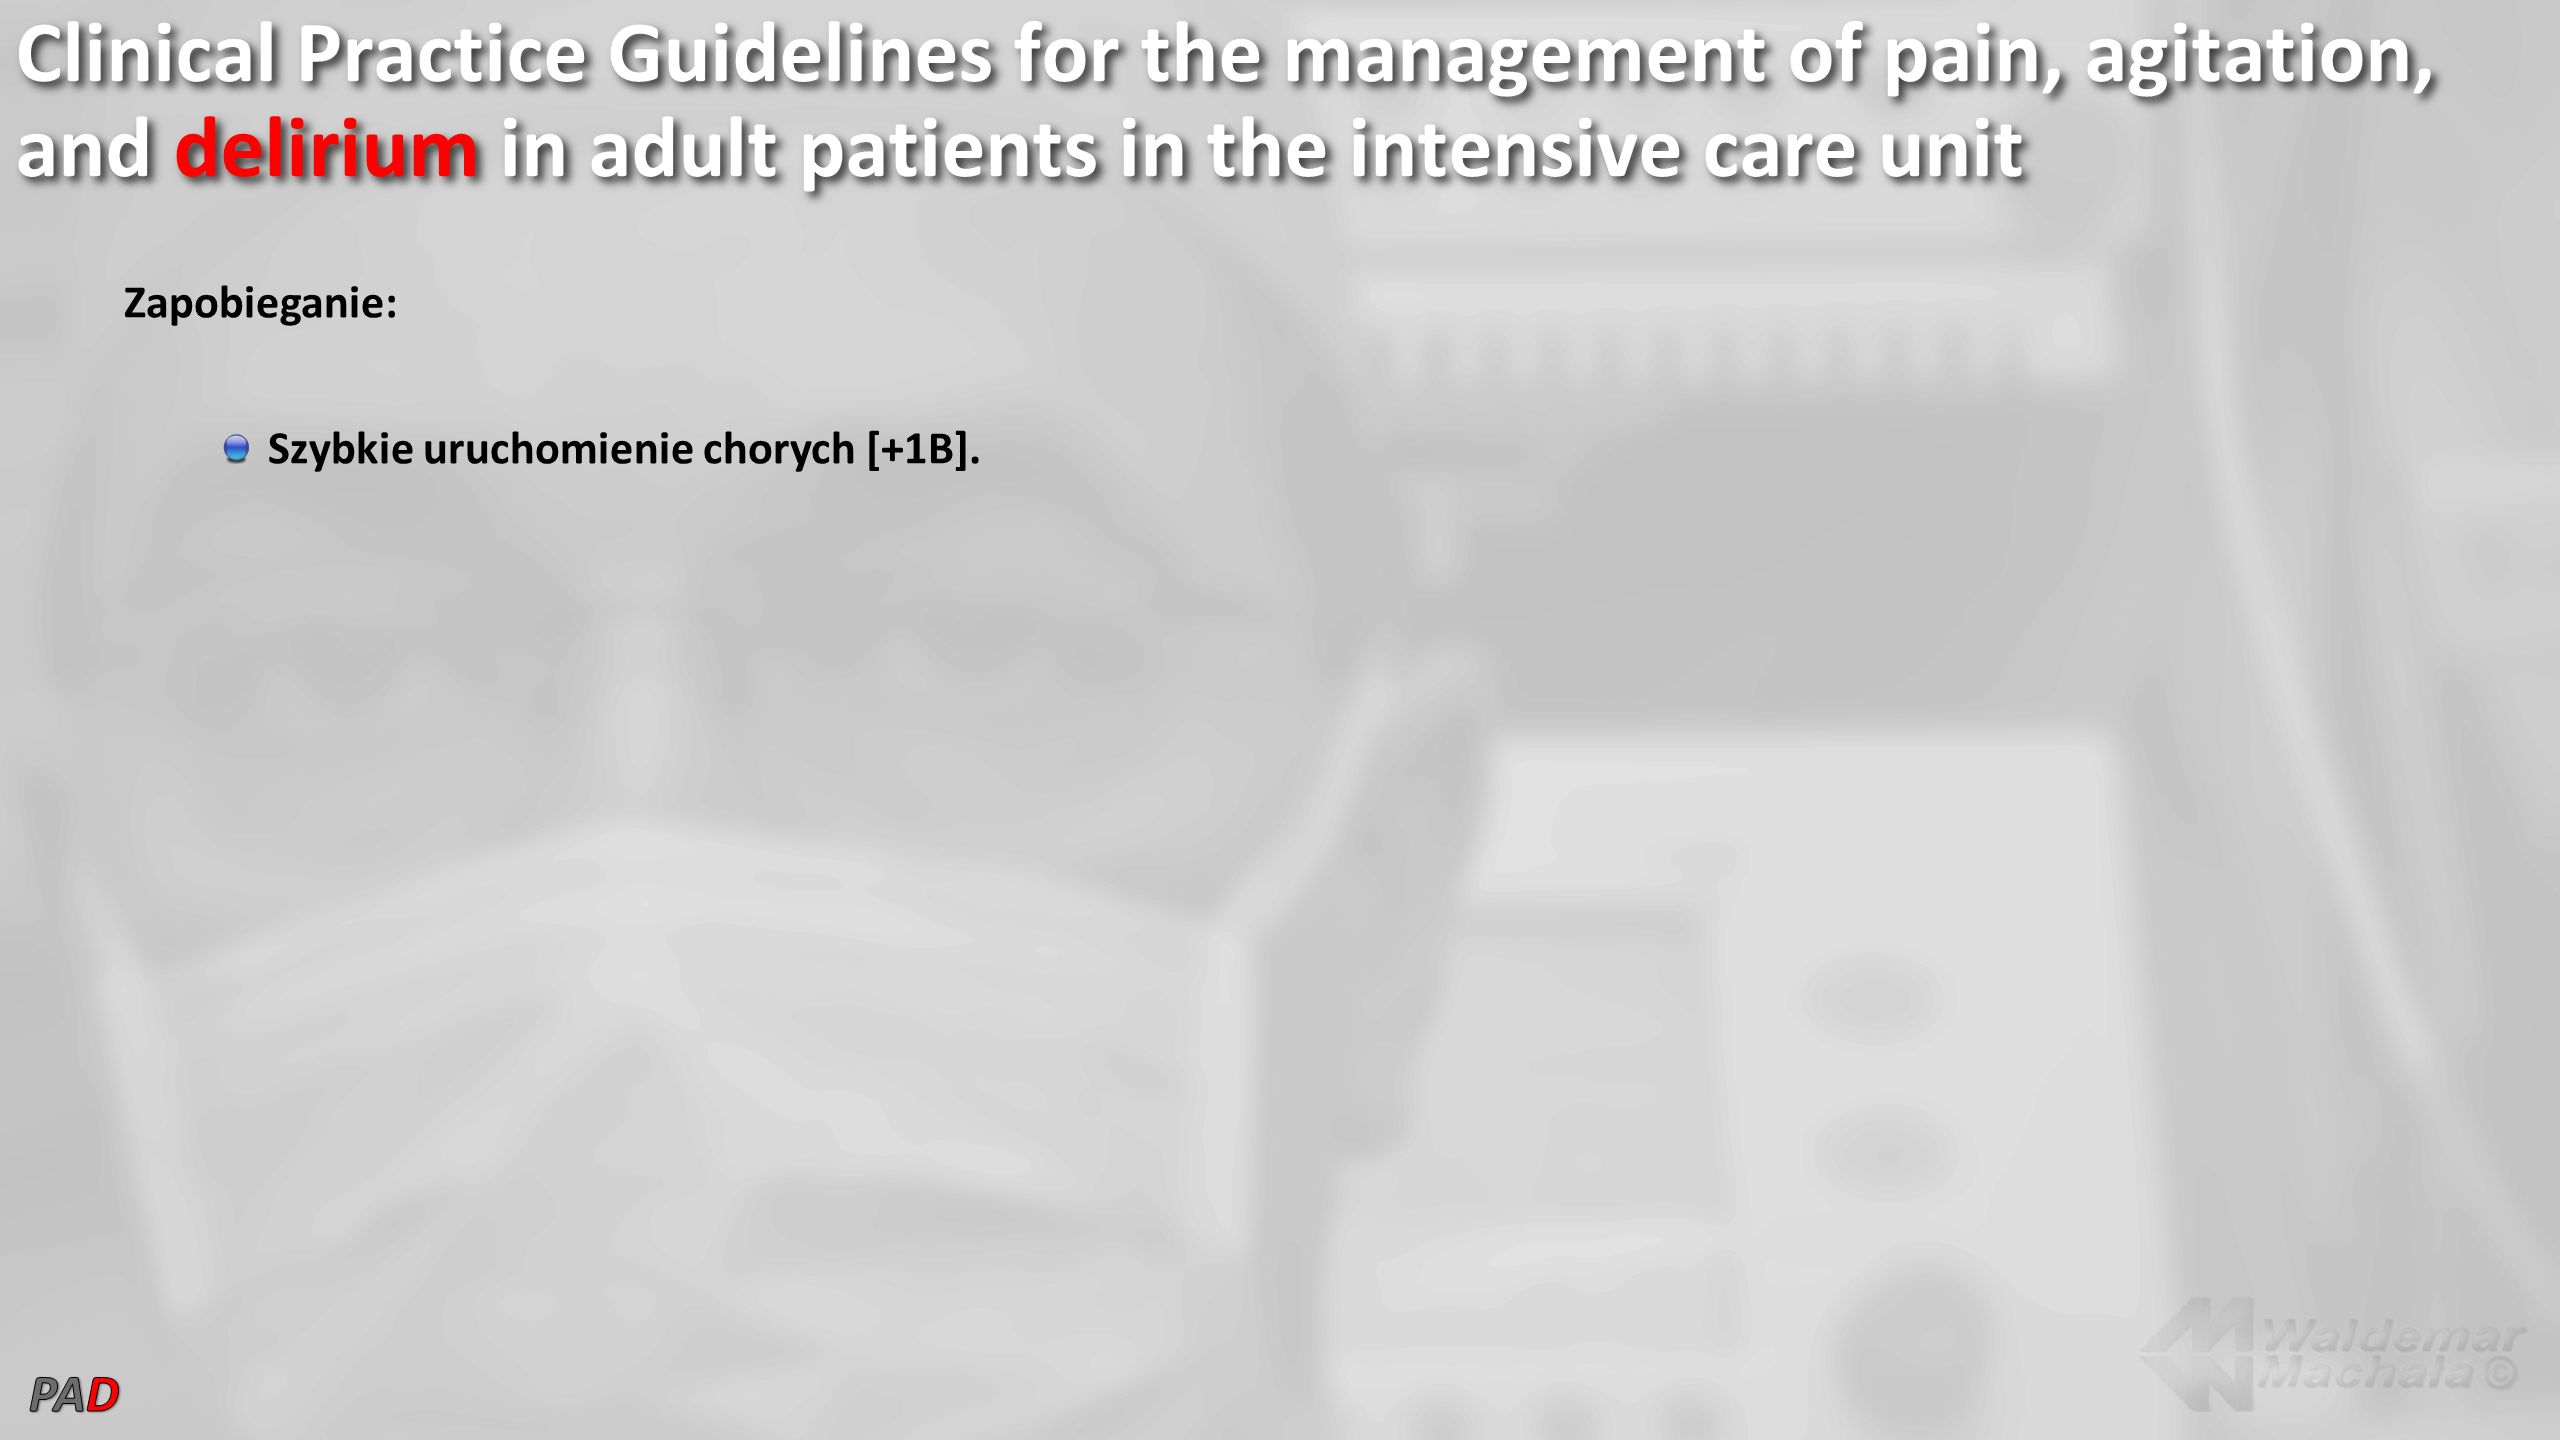 Clinical Practice Guidelines for the management of pain, agitation, and delirium in adult patients in the intensive care unit Zapobieganie: Szybkie uruchomienie chorych [+1B].